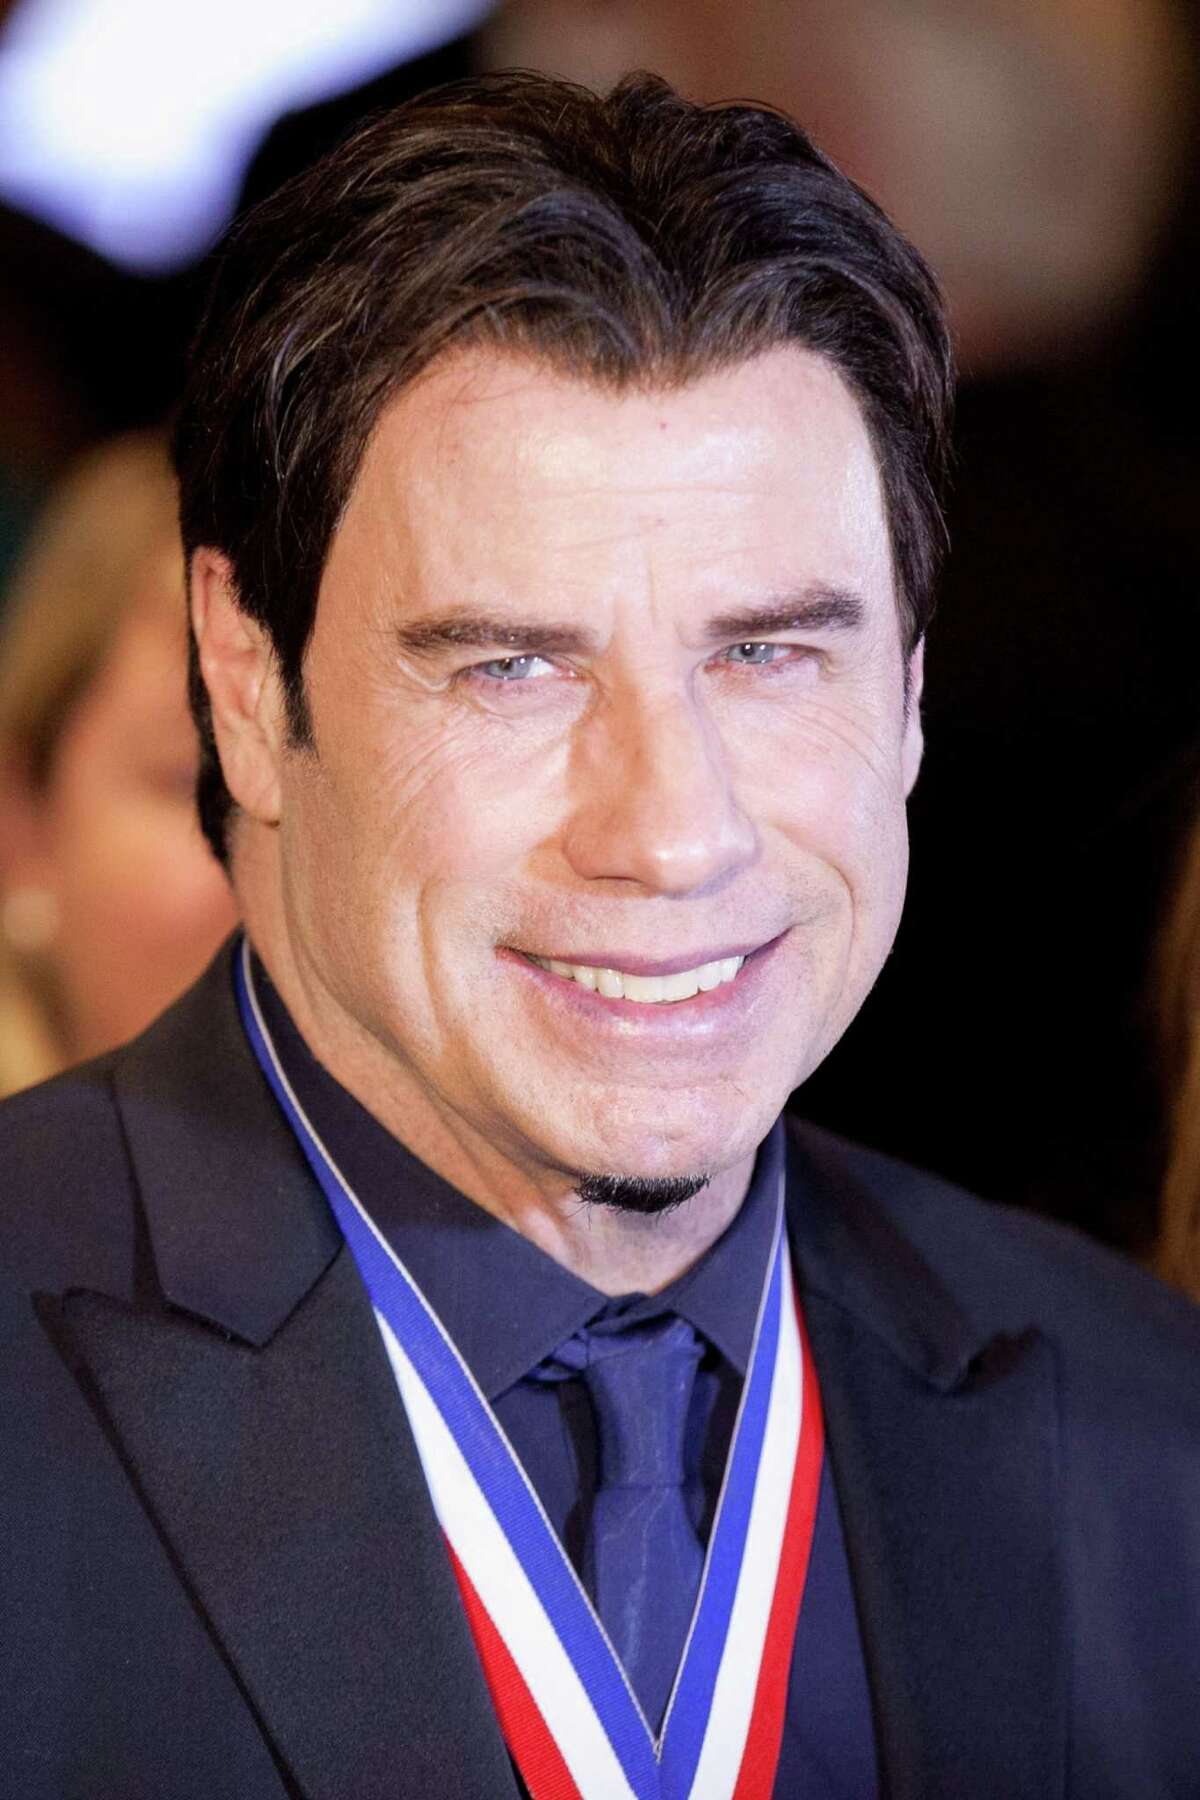 From John Travolta to Tom Petty, here are 16 celebrities who are turning 60 in 2014. Click through the gallery to see other stars marking a milestone.John Travolta: February 18